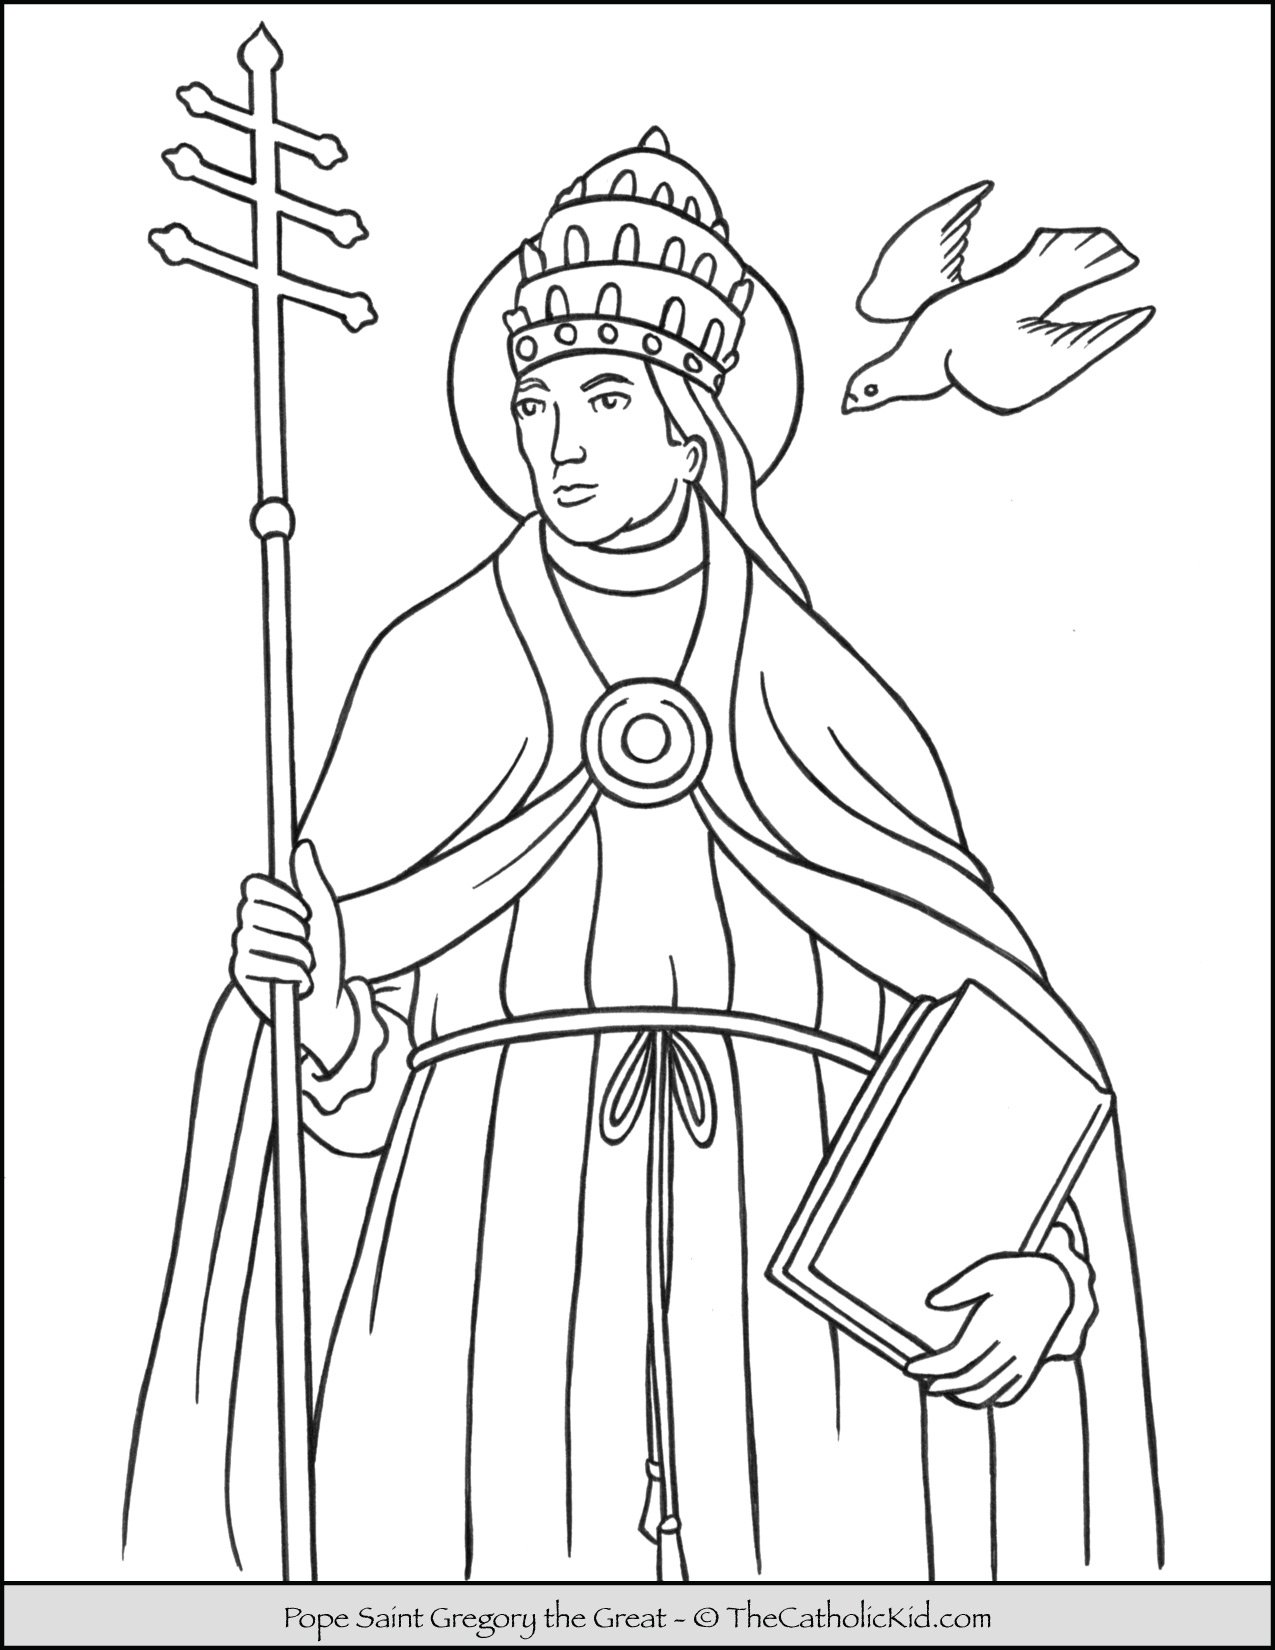 Pope Saint Gregory the Great Coloring Page